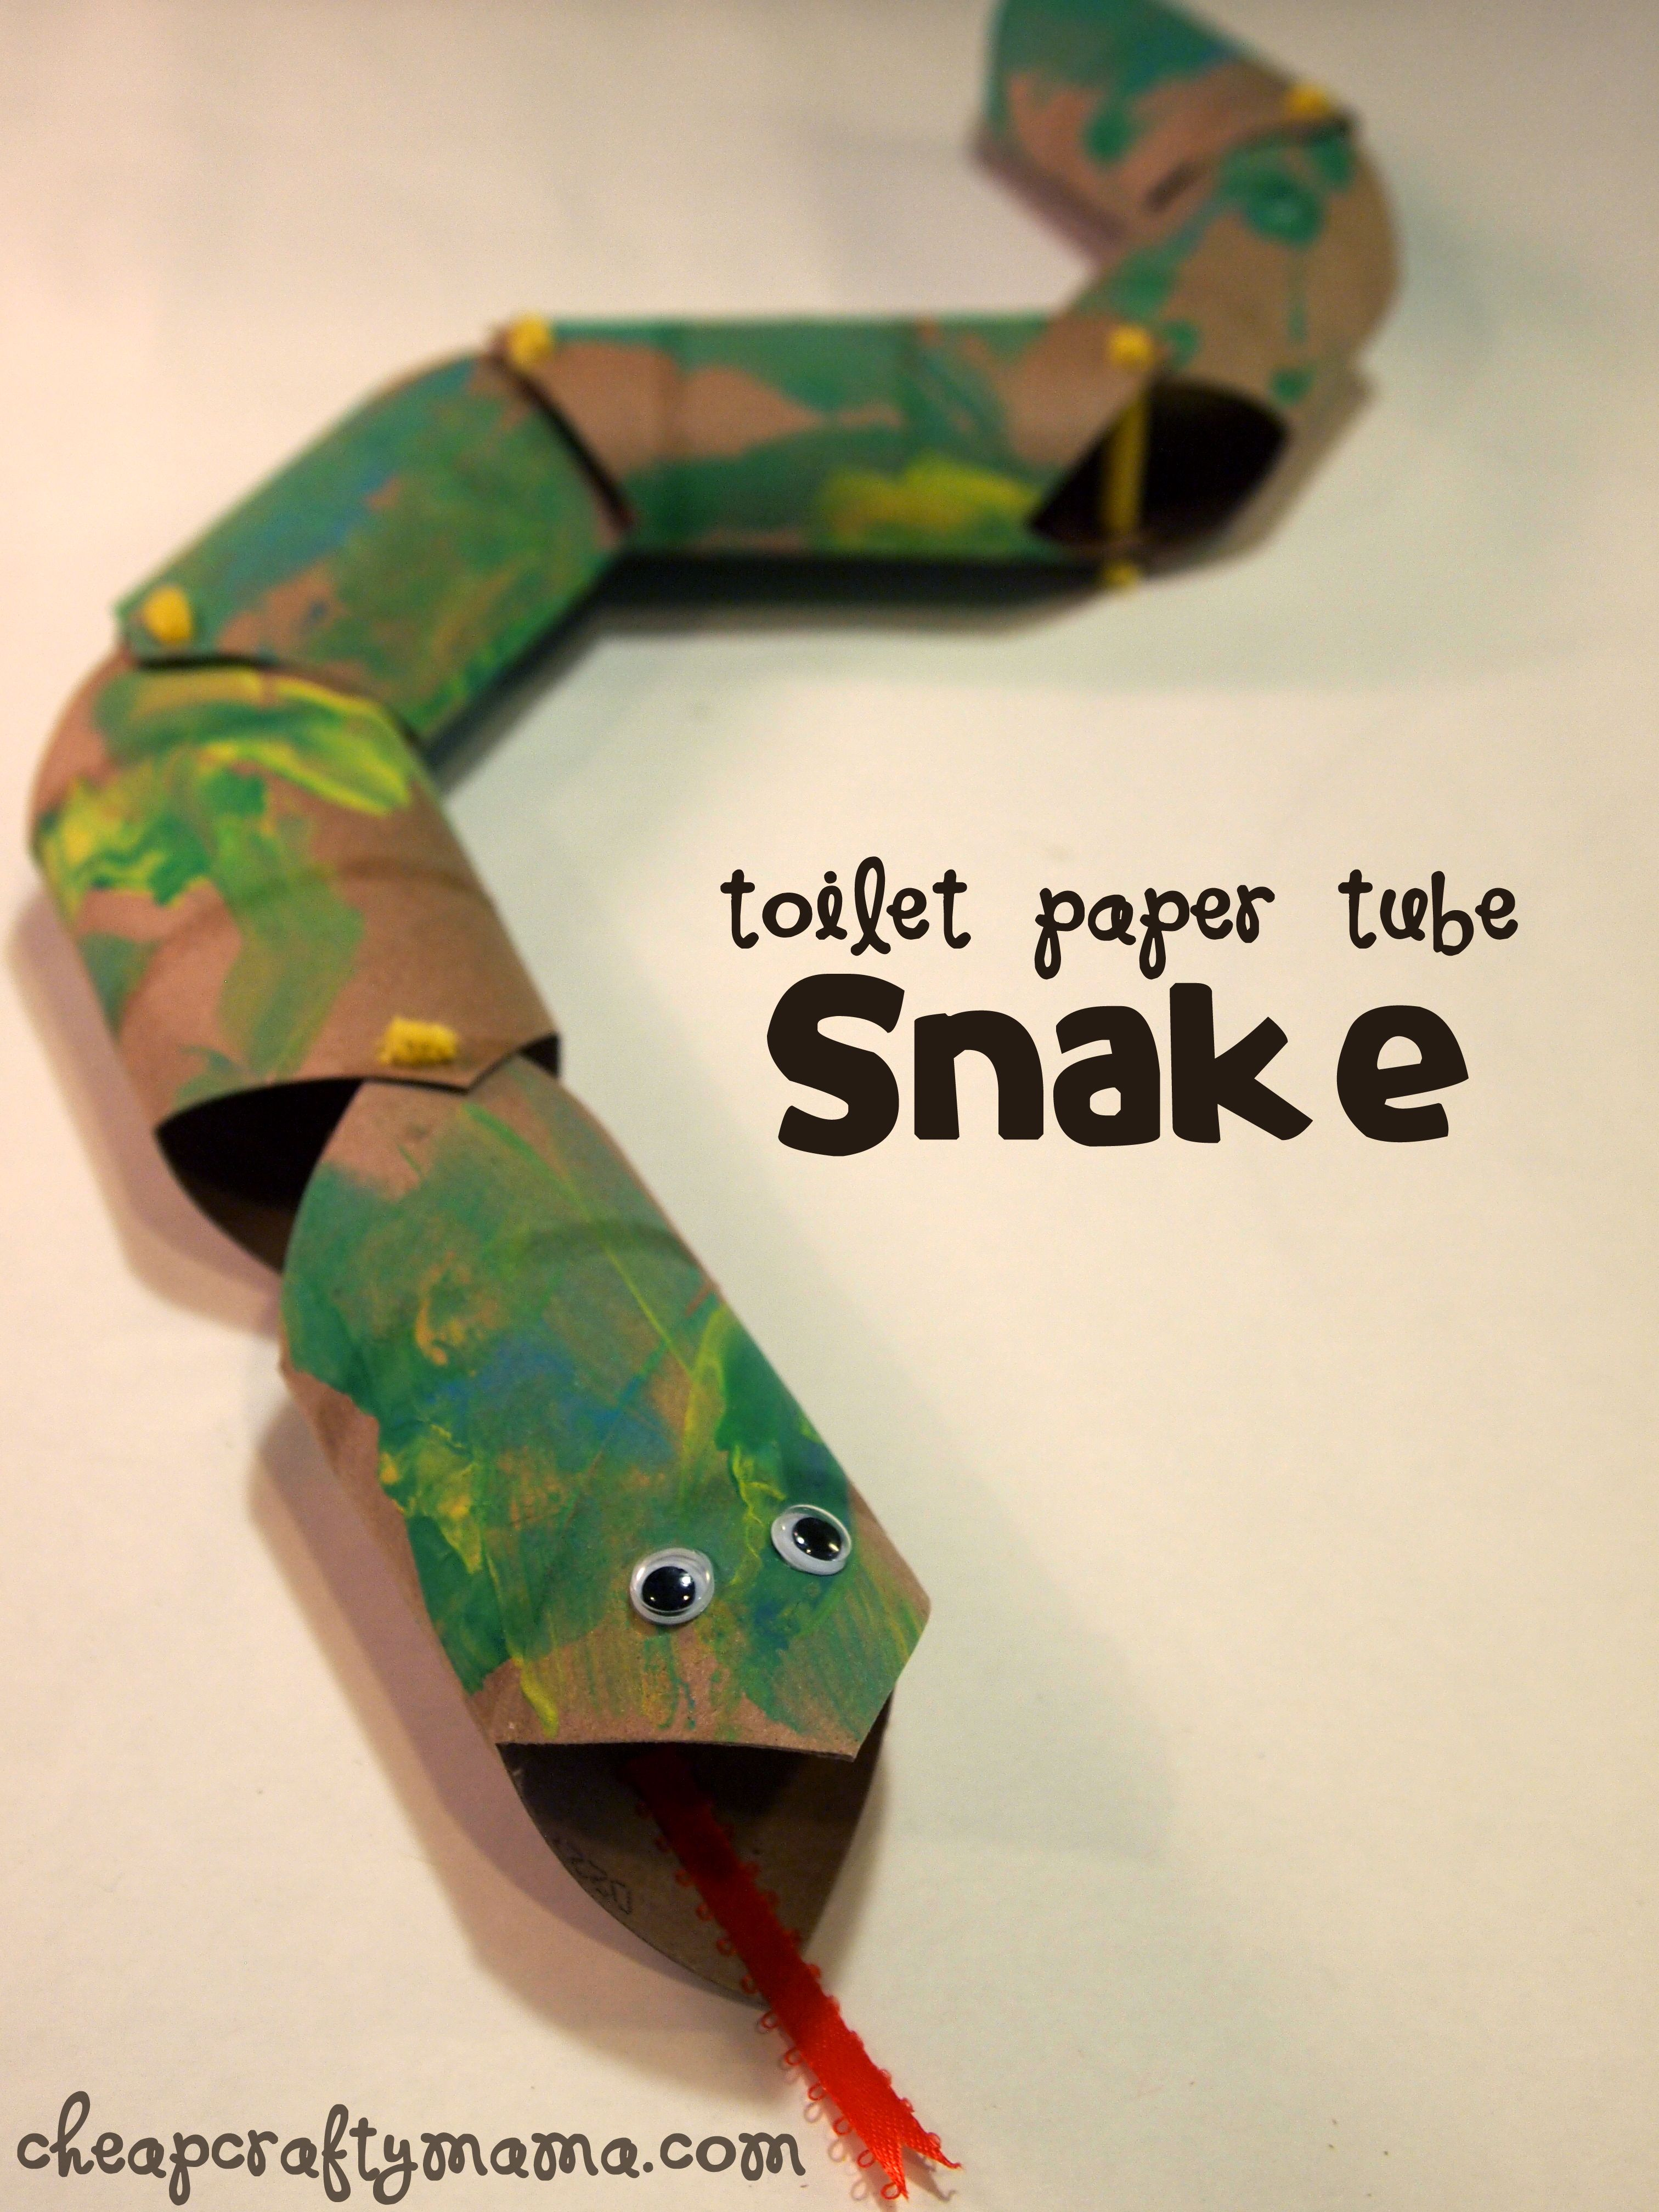 Happy chinese year of the snake celebrate with this for Recycling toilet paper tubes